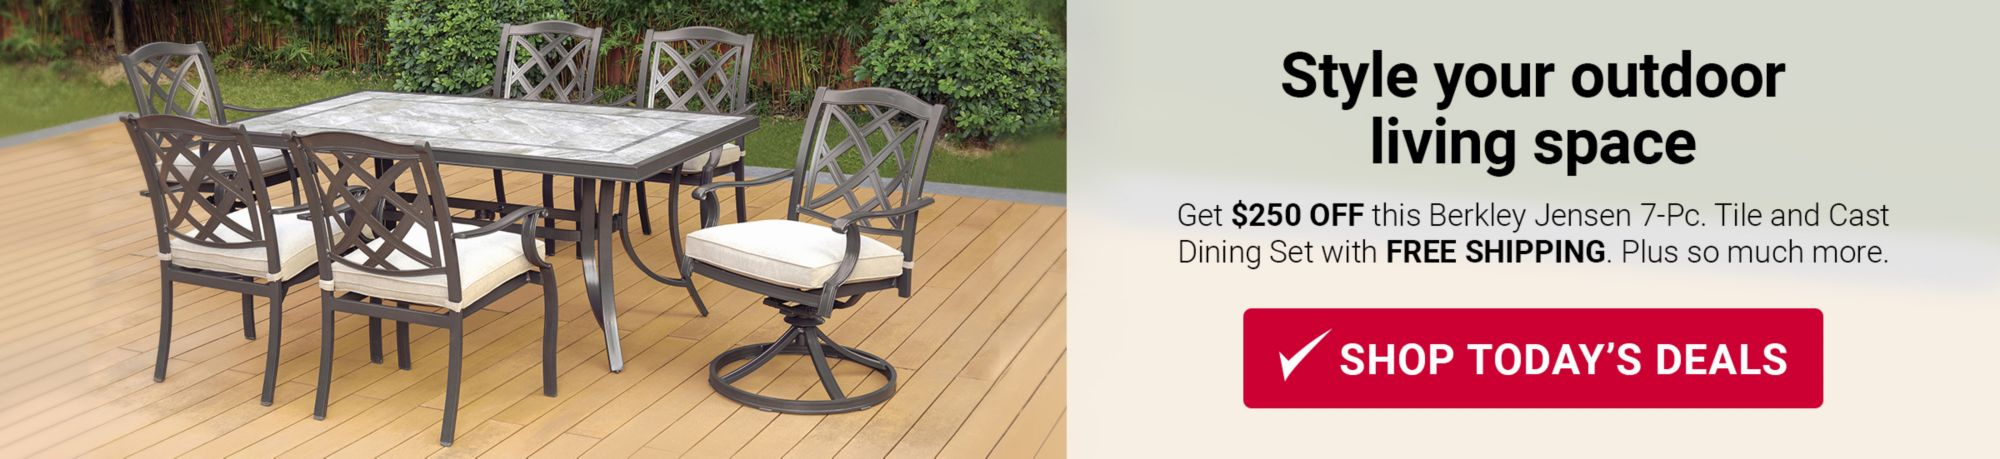 Style your outdoor living space. Get $250 OFF this Berkley Jensen 7 piece Tile and Cast Dining Set with FREE SHIPPING. Plus so much more. Click here to shop today's deals.